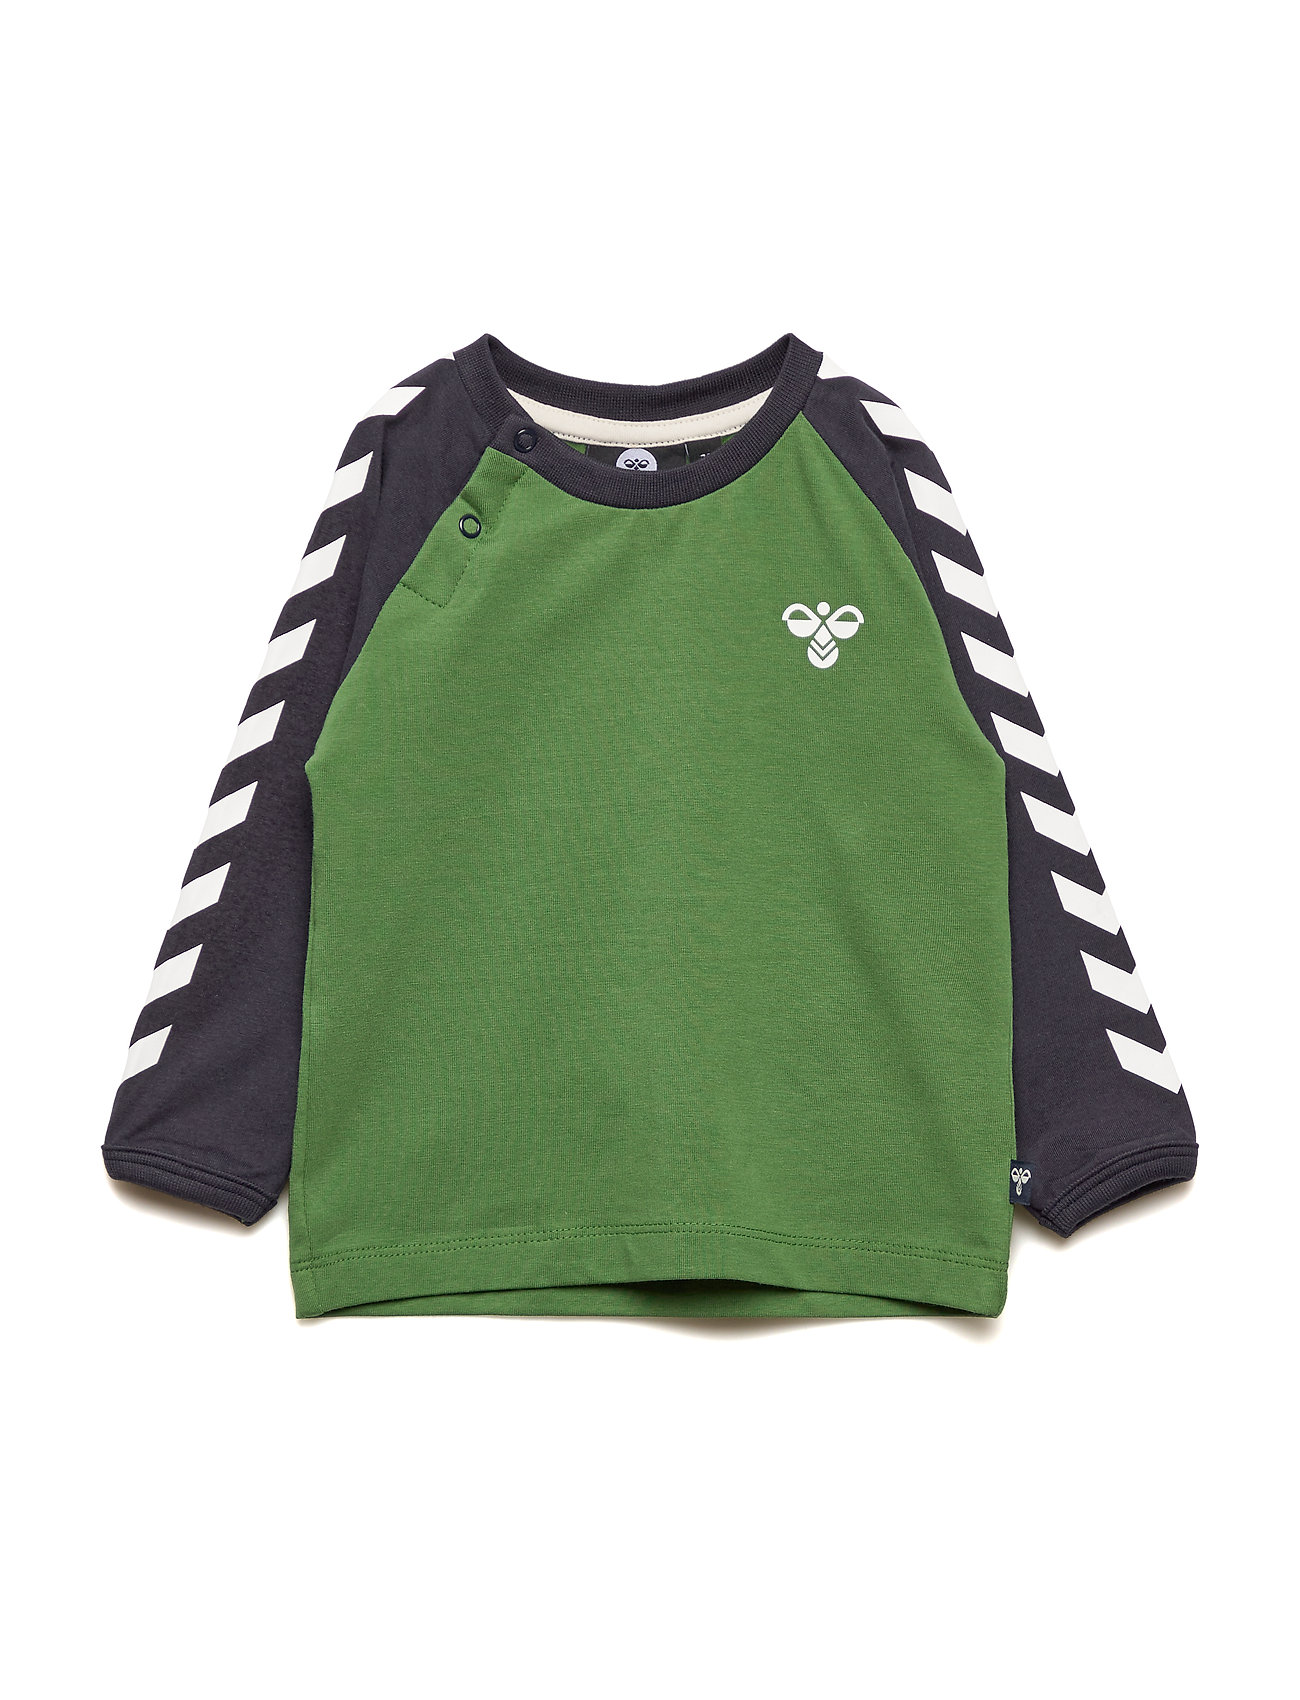 Hummel hmlRYAN T-SHIRT L/S - WILLOW BOUGH